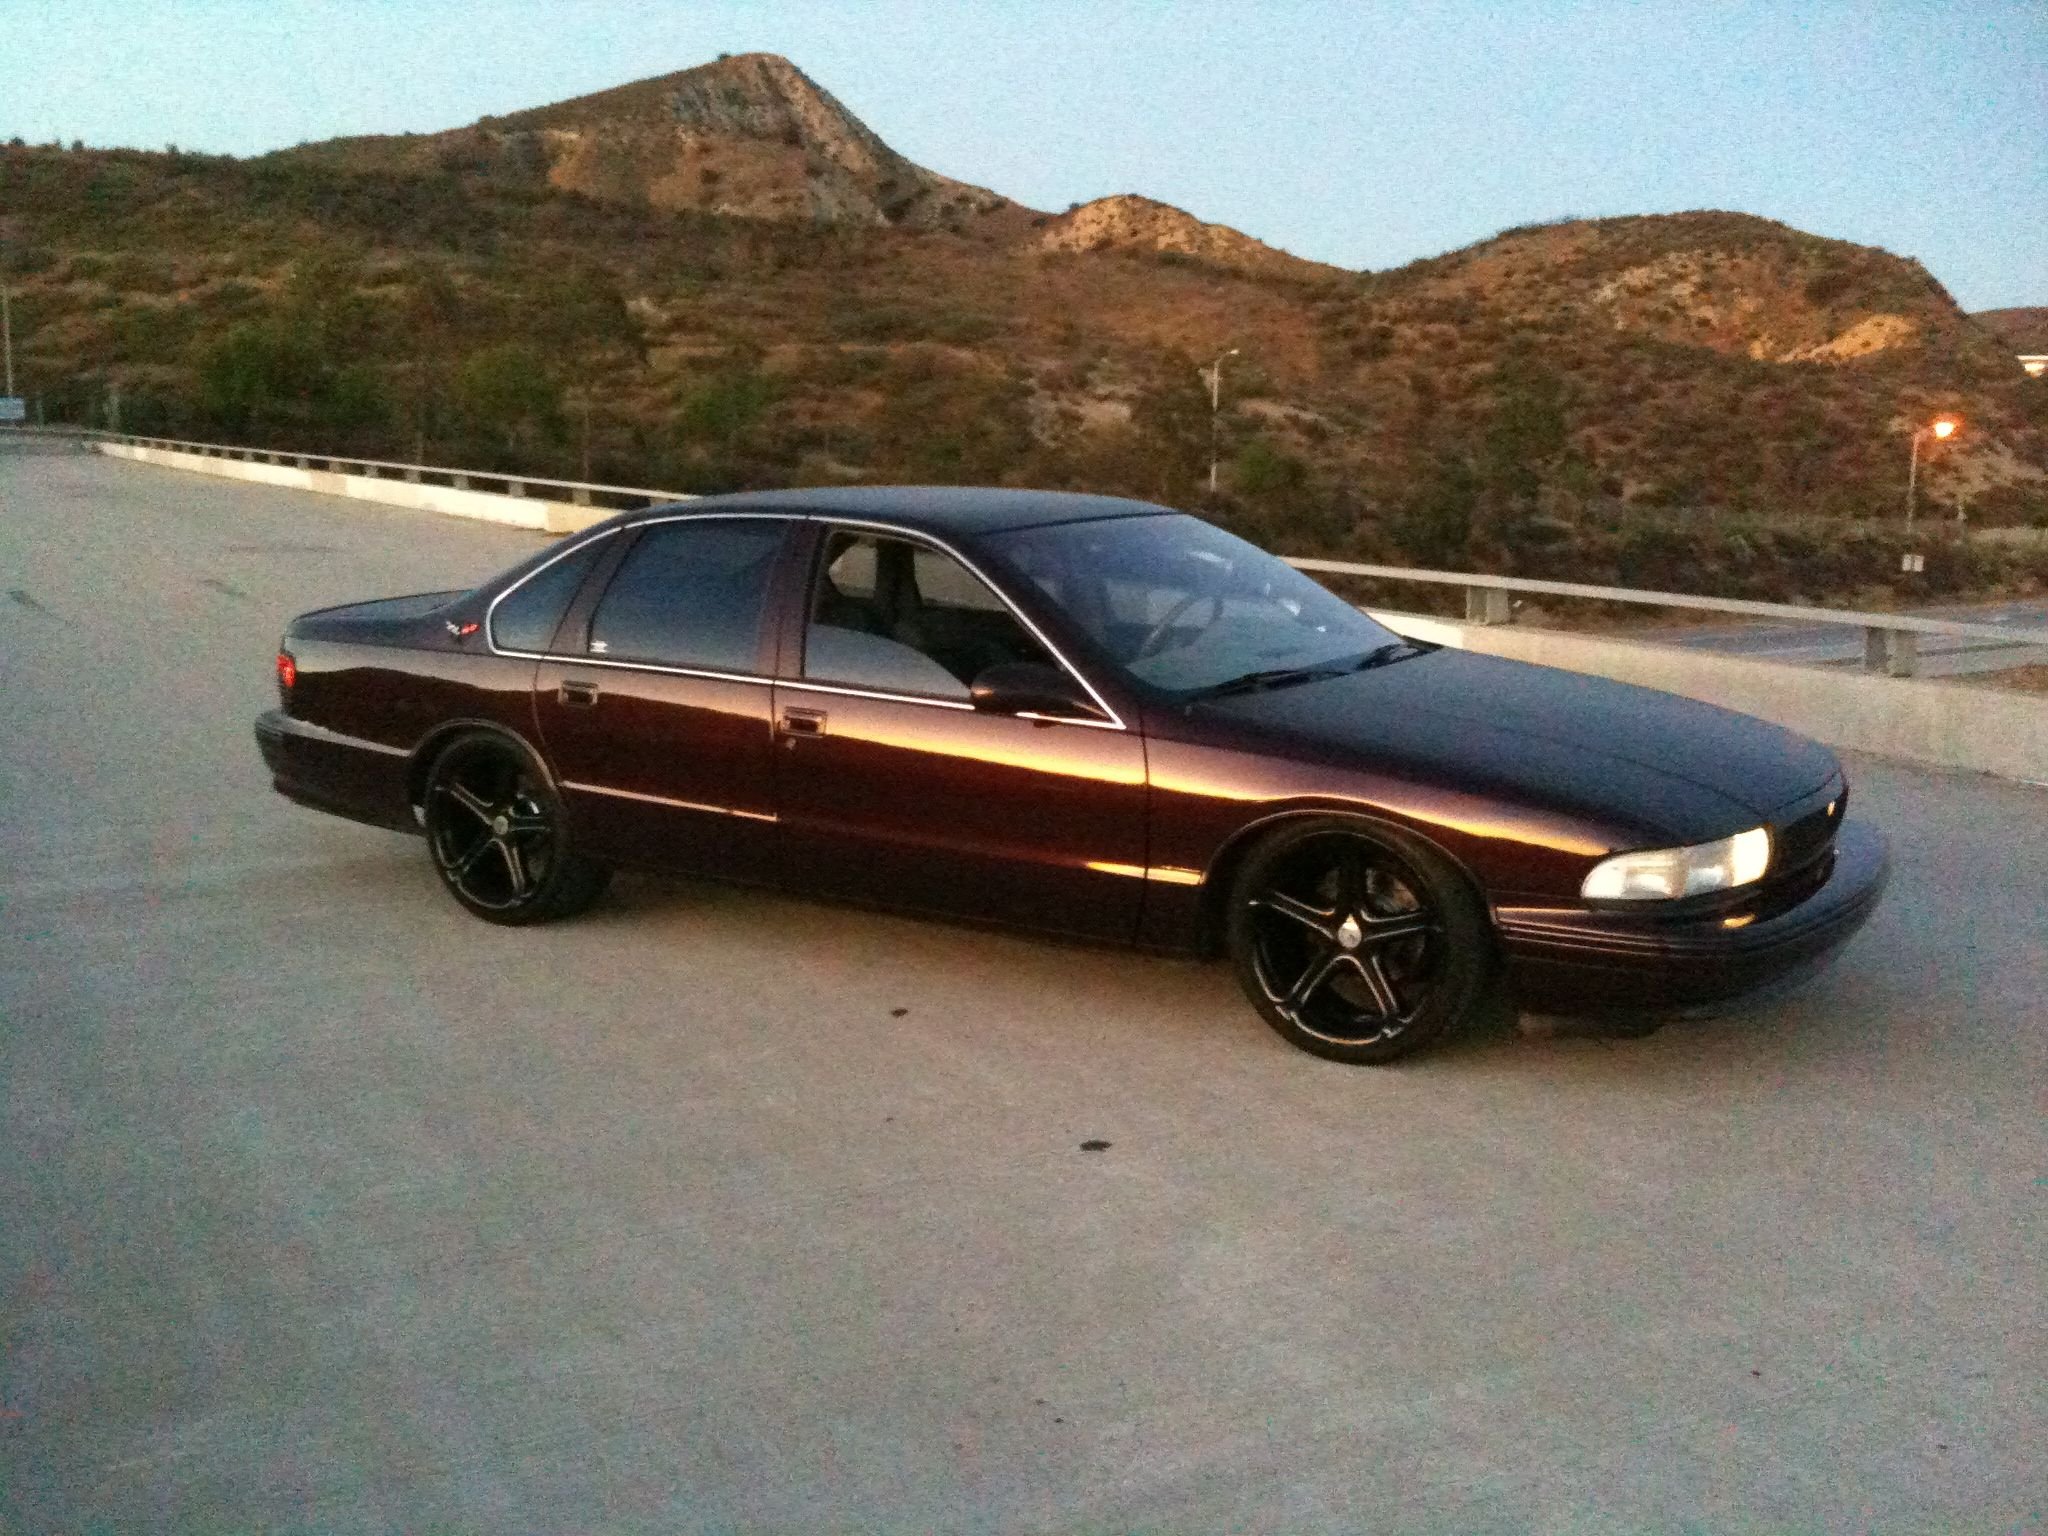 1996 Chevrolet Impala SS On Lexani Rims | Rides Magazine | Whips |  Pinterest | Chevrolet, Cars and Dream cars